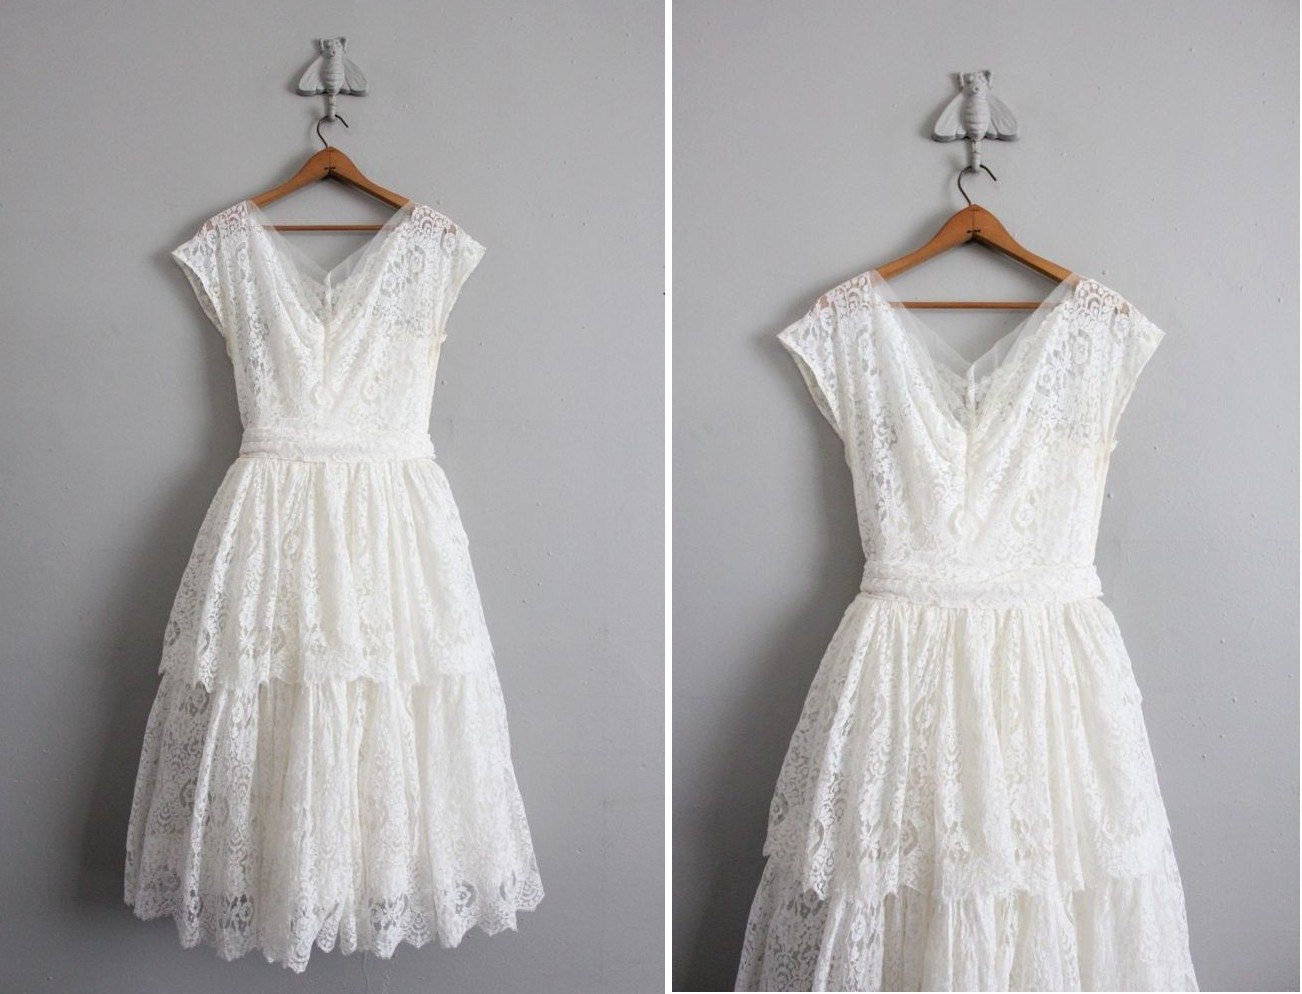 1950s vintage white lace wedding dress by allencompany on etsy for Wedding dress on etsy